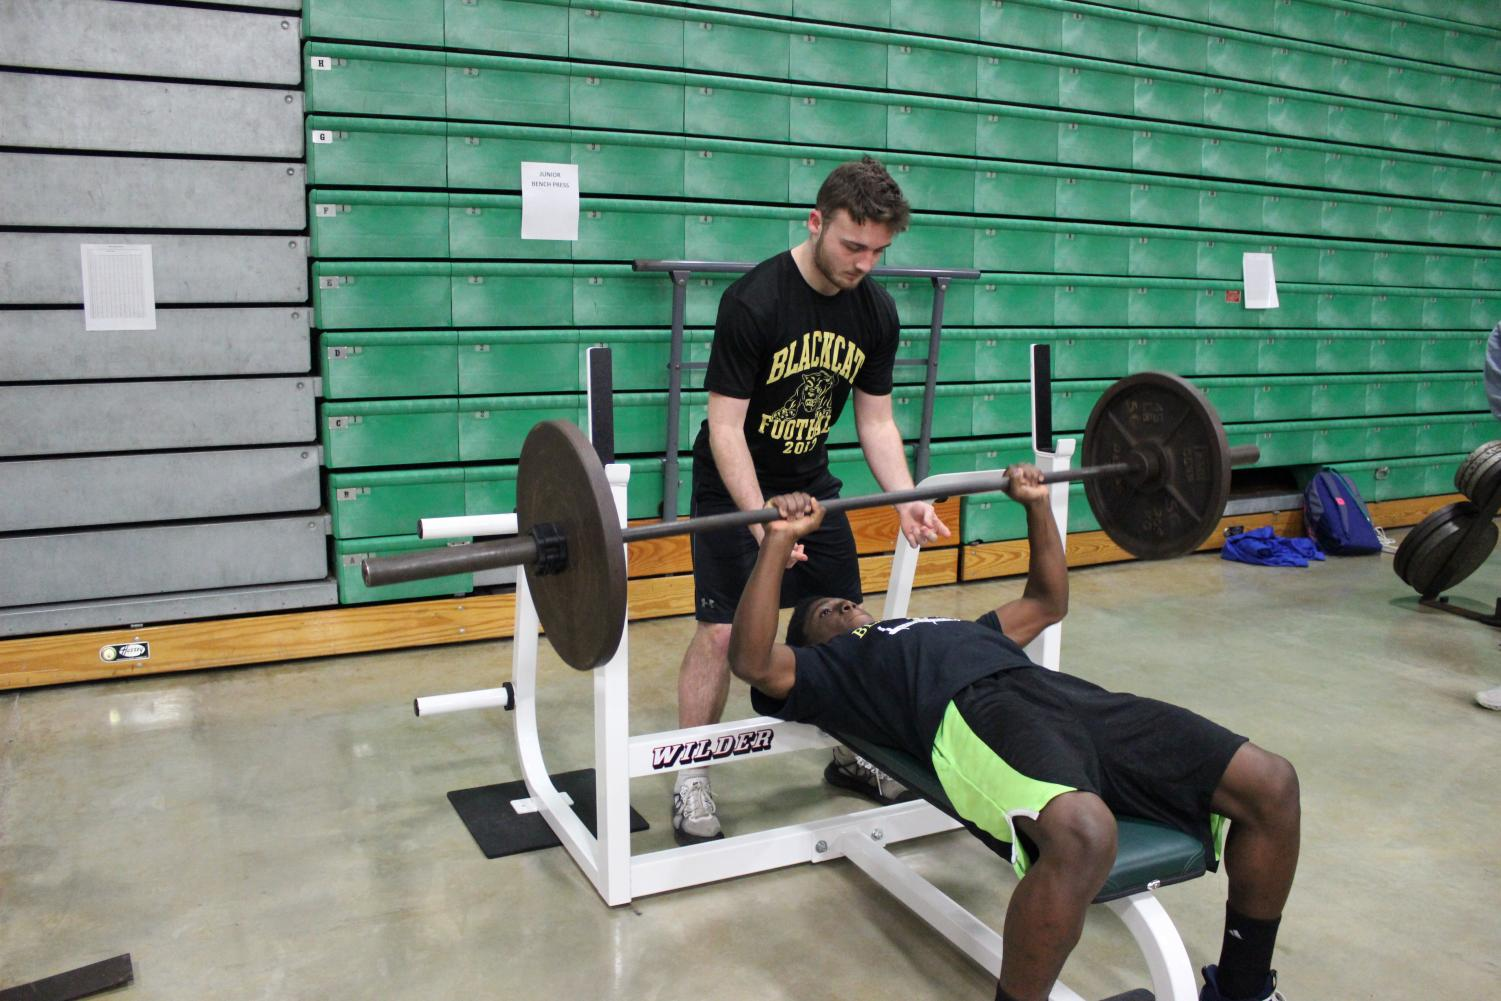 Chris Harwood spotting Malachi Kyle on Bench Press